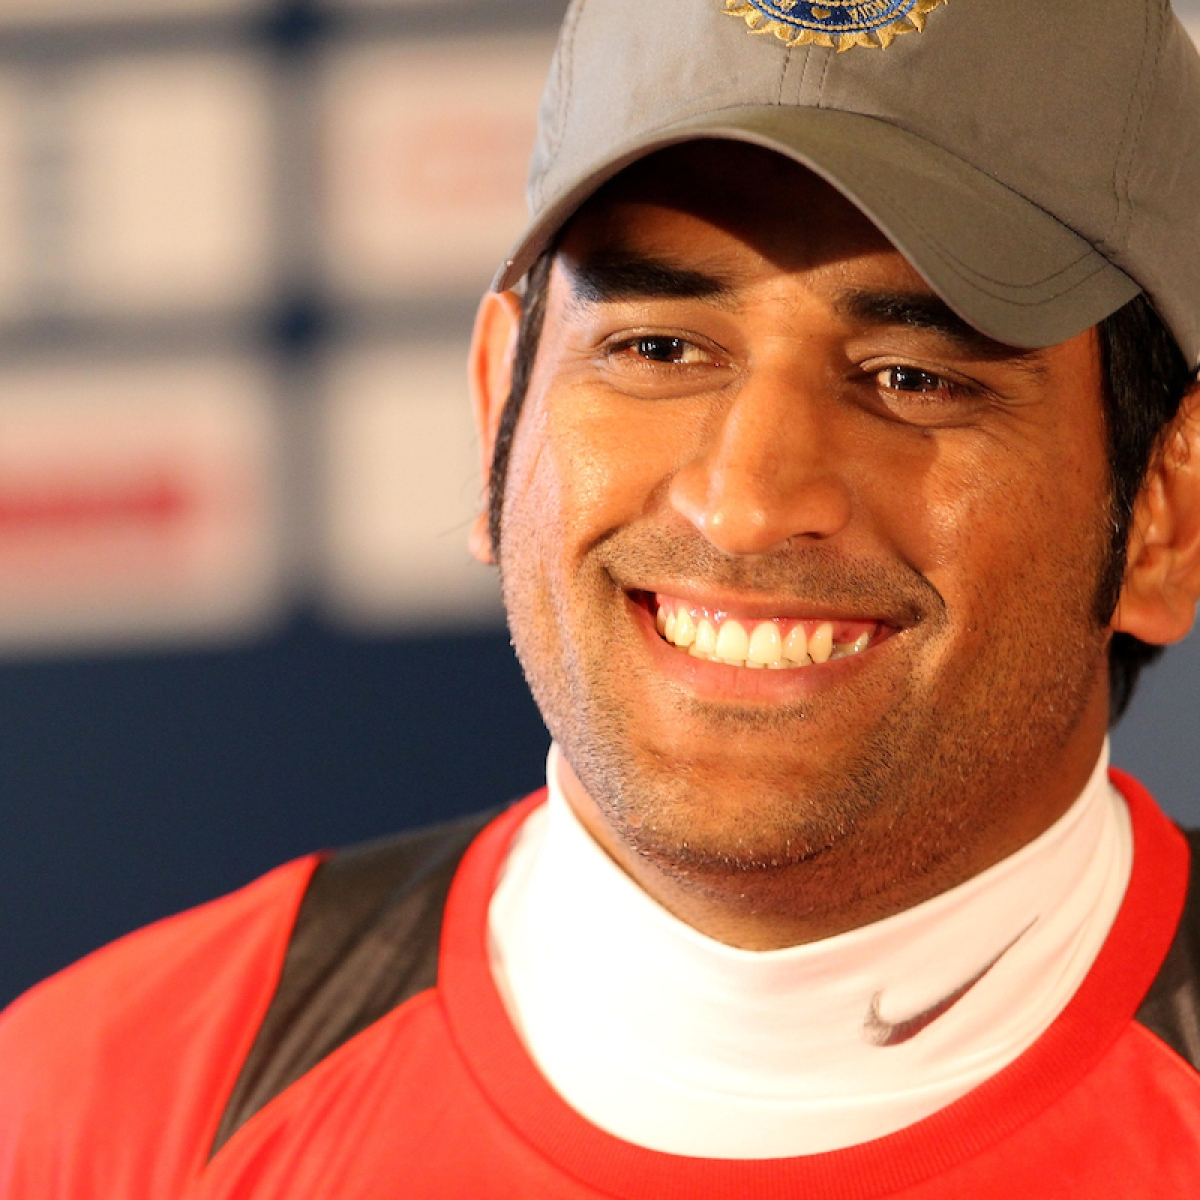 MS Dhoni's smile will take away all your coronavirus blues